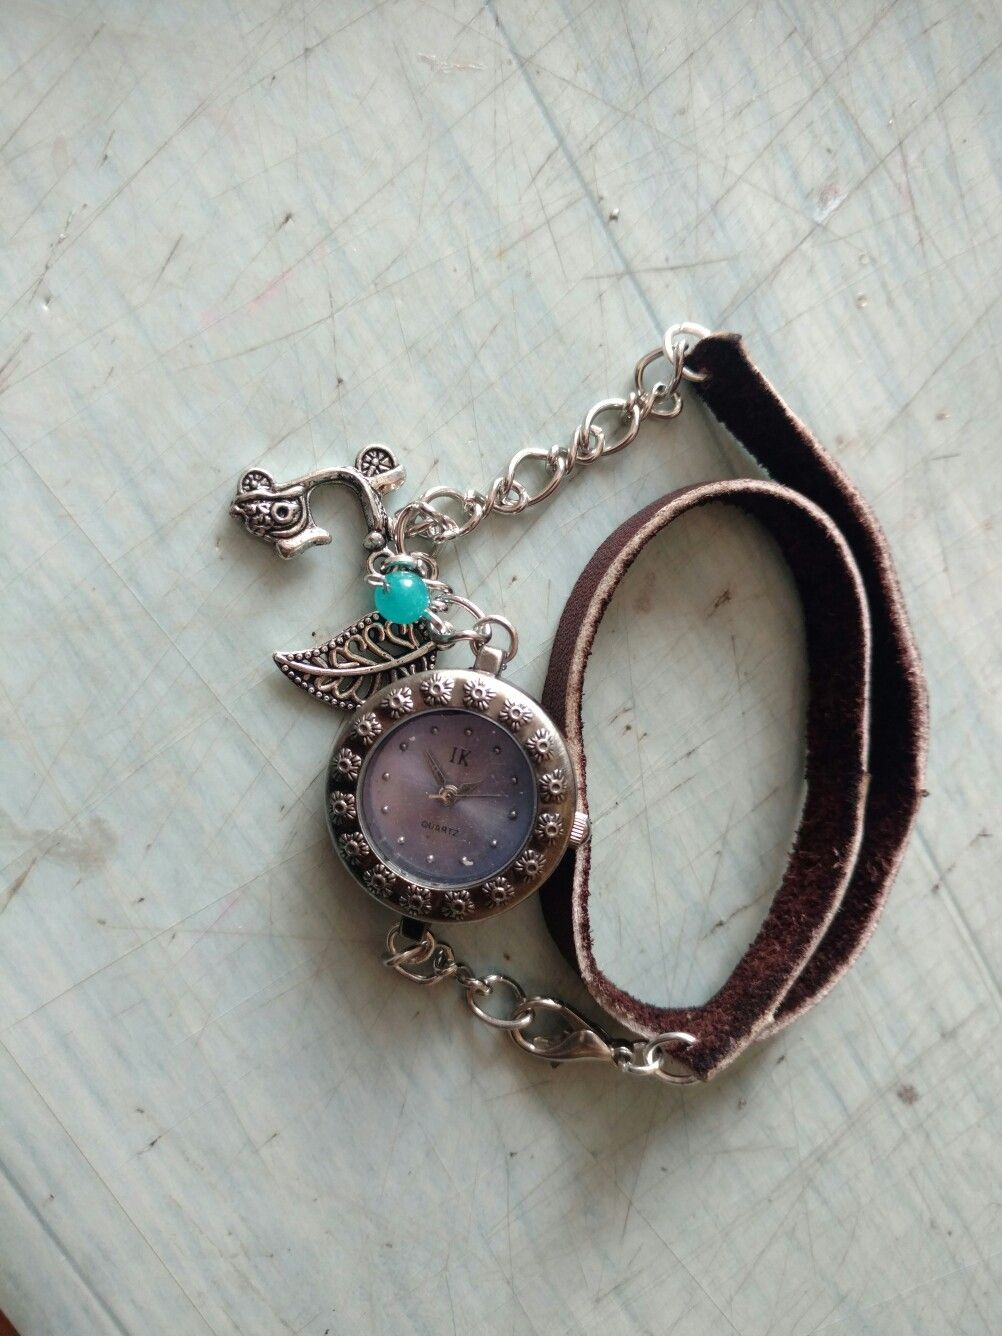 My diy leather watch with charm..